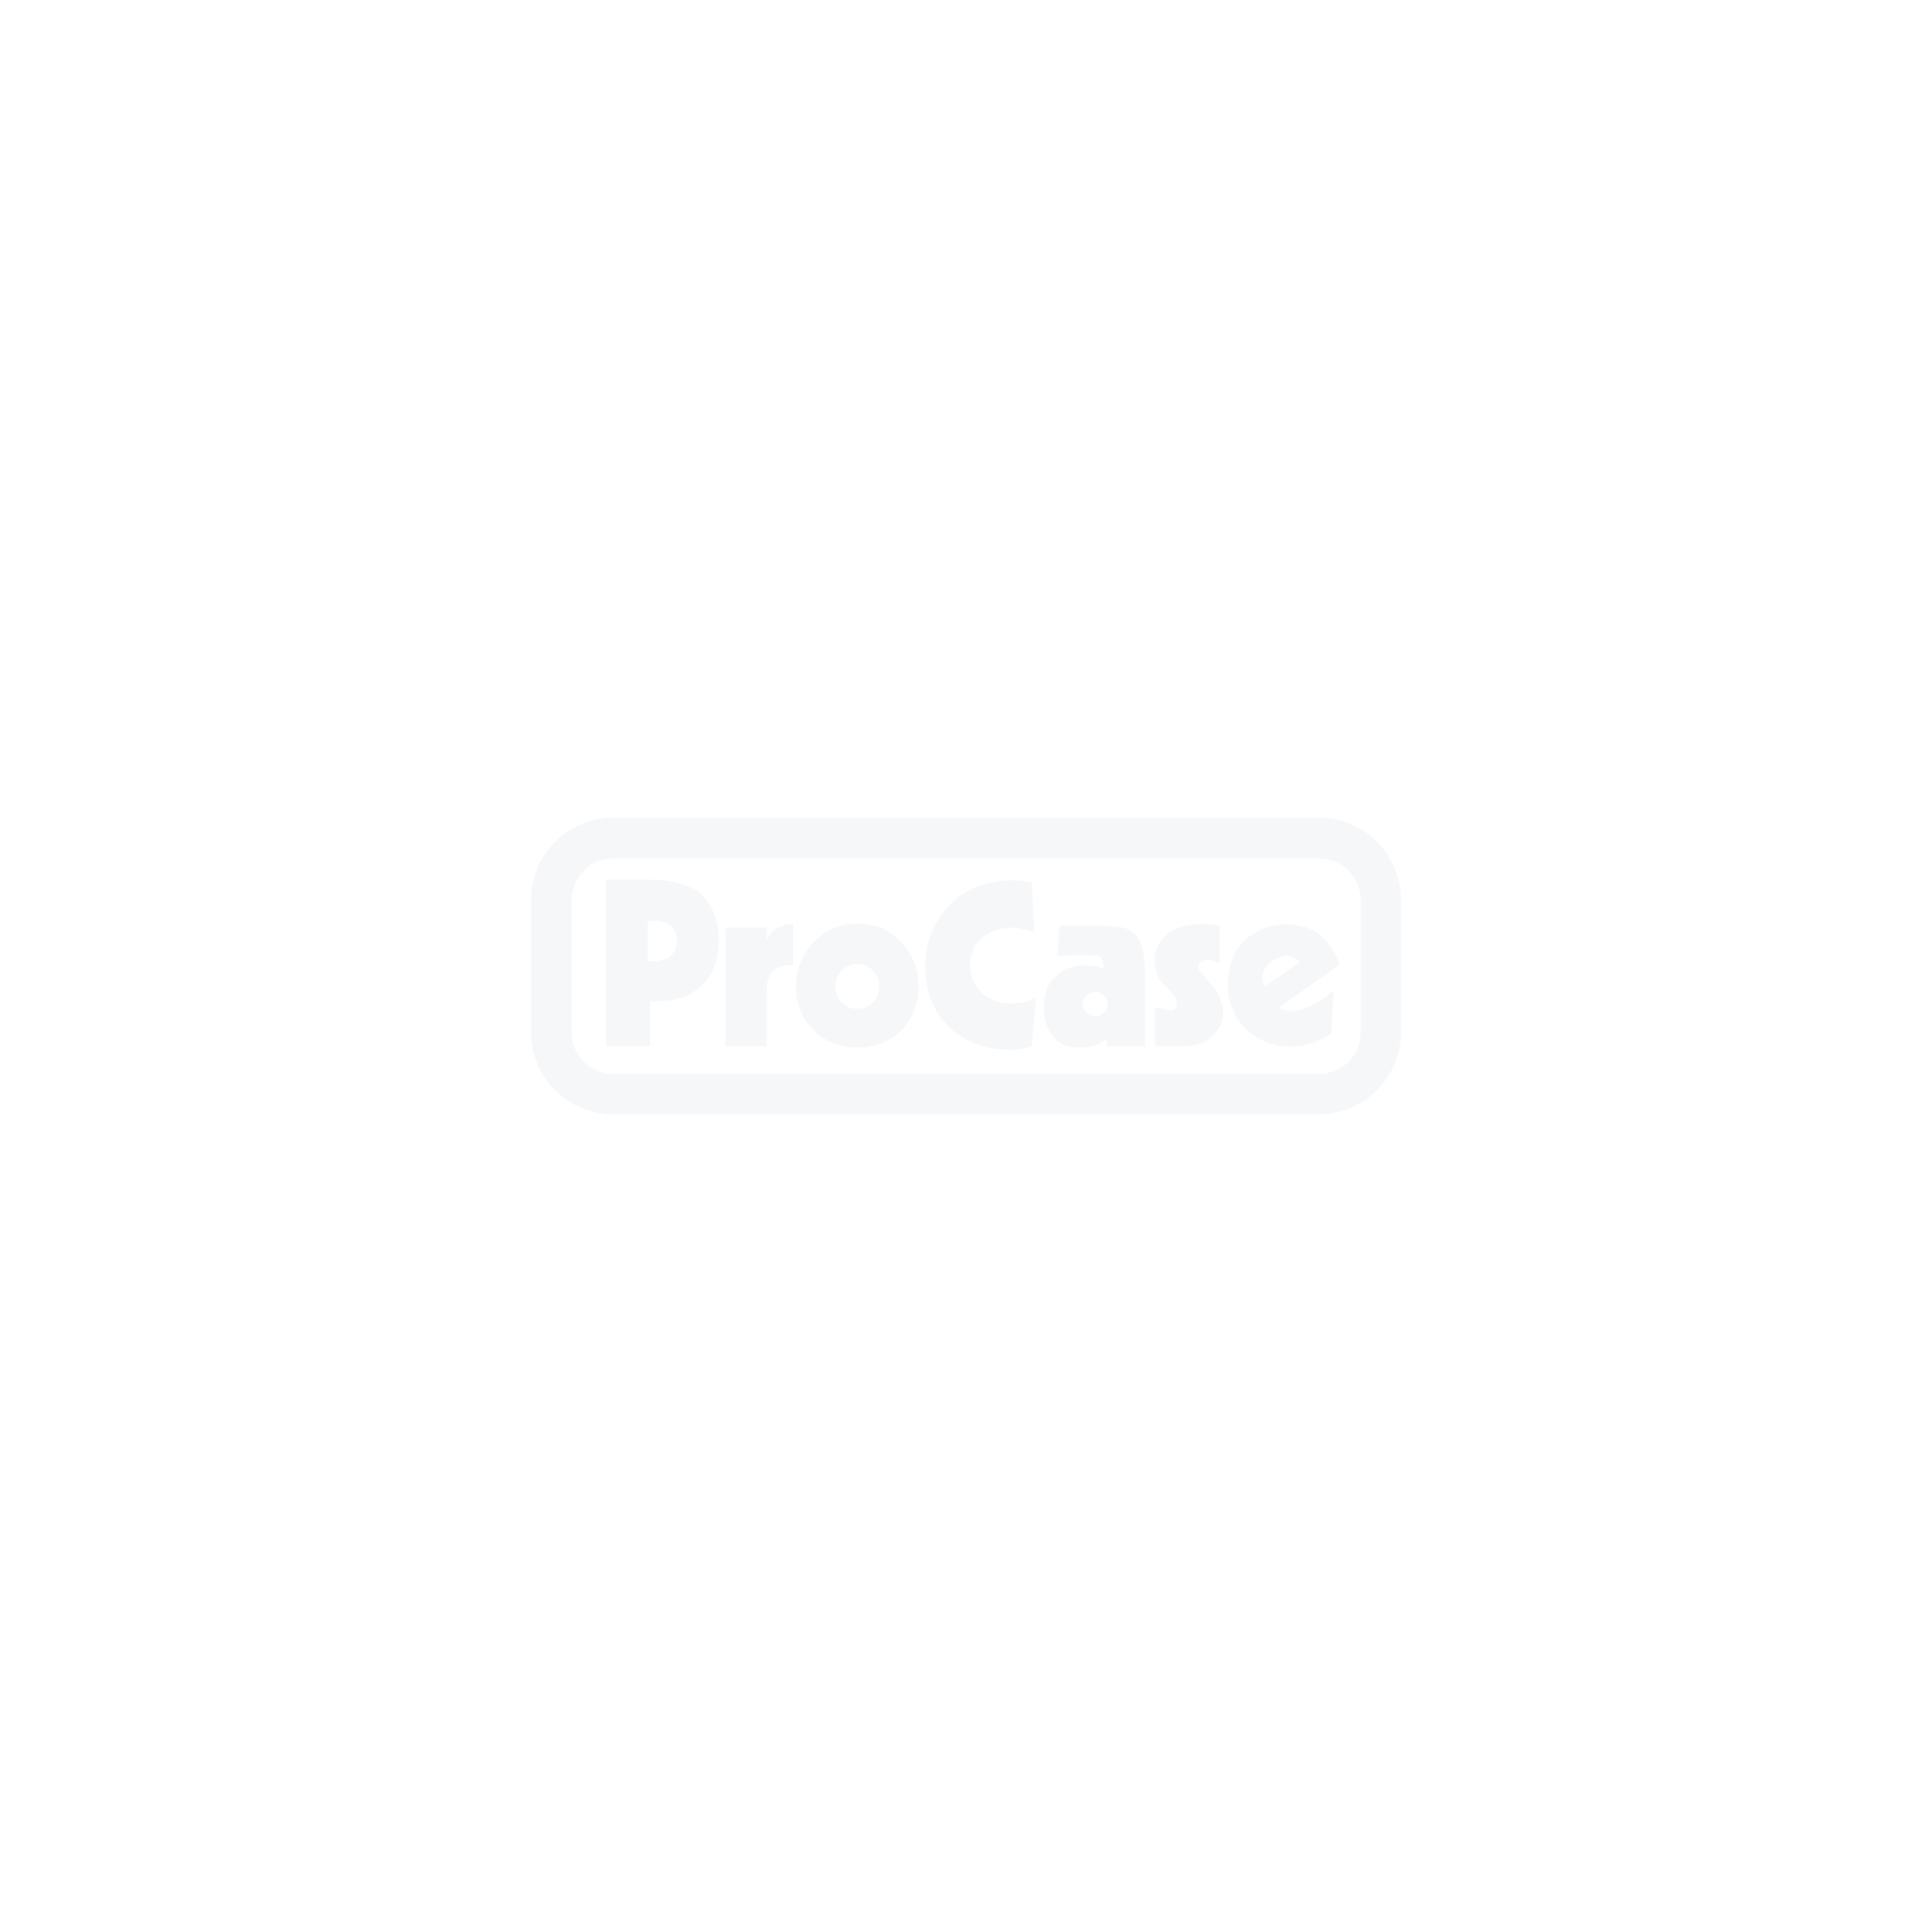 Flightcase für 6 Tensator Tensabarrier Advance Absperrsäulen 2